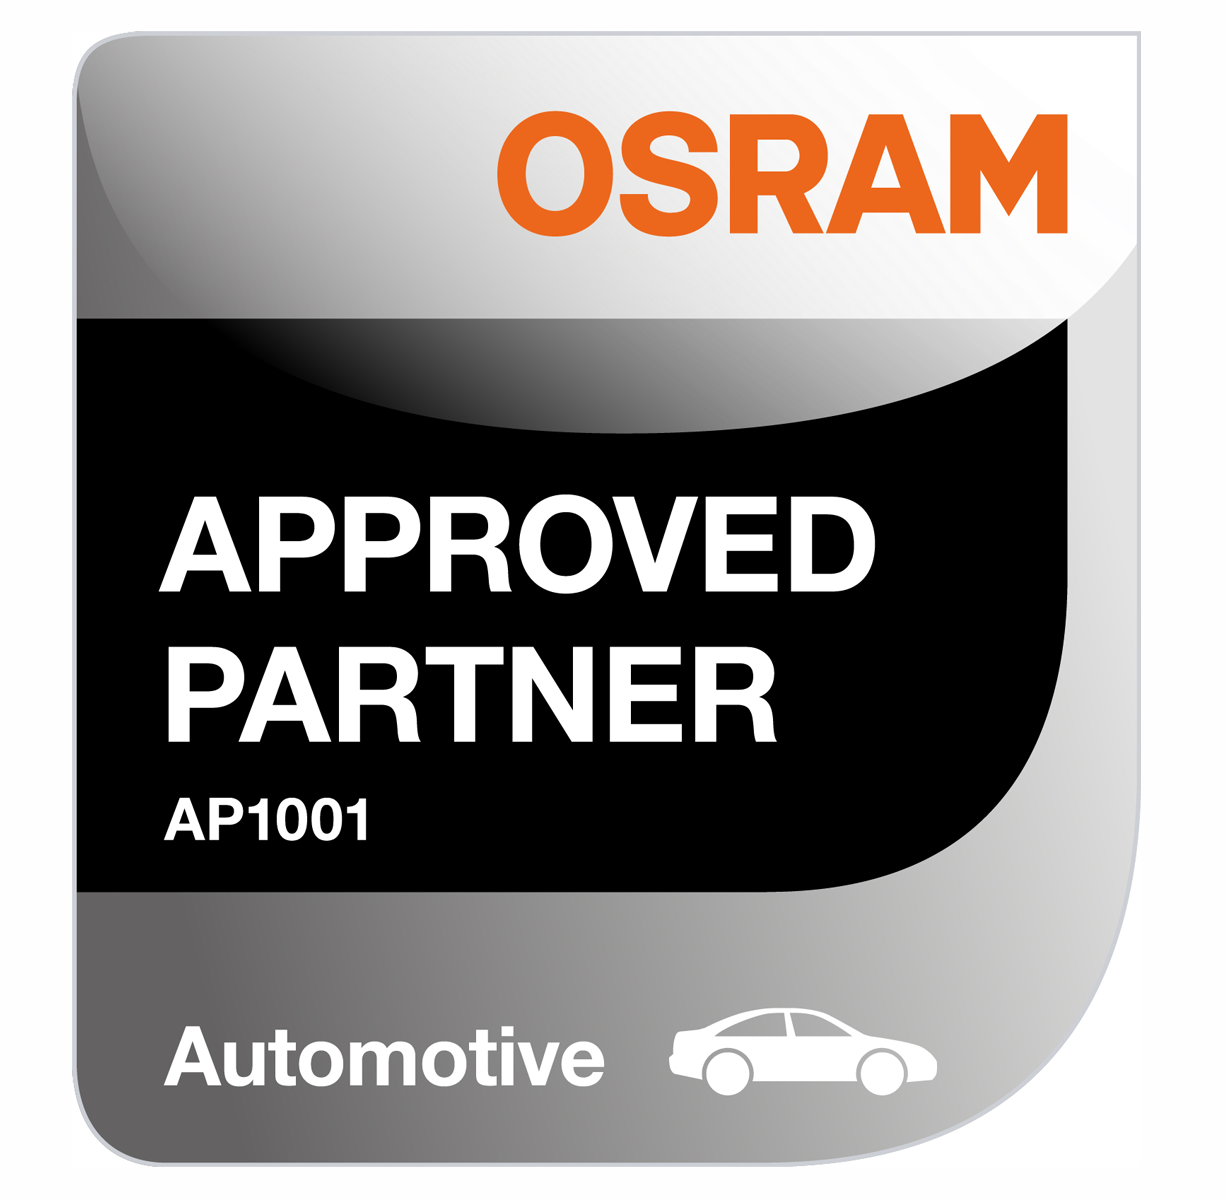 https://www.driven2automotive.com/ebaystore/images/osram/Approved-Partner-logo-AP1001.png